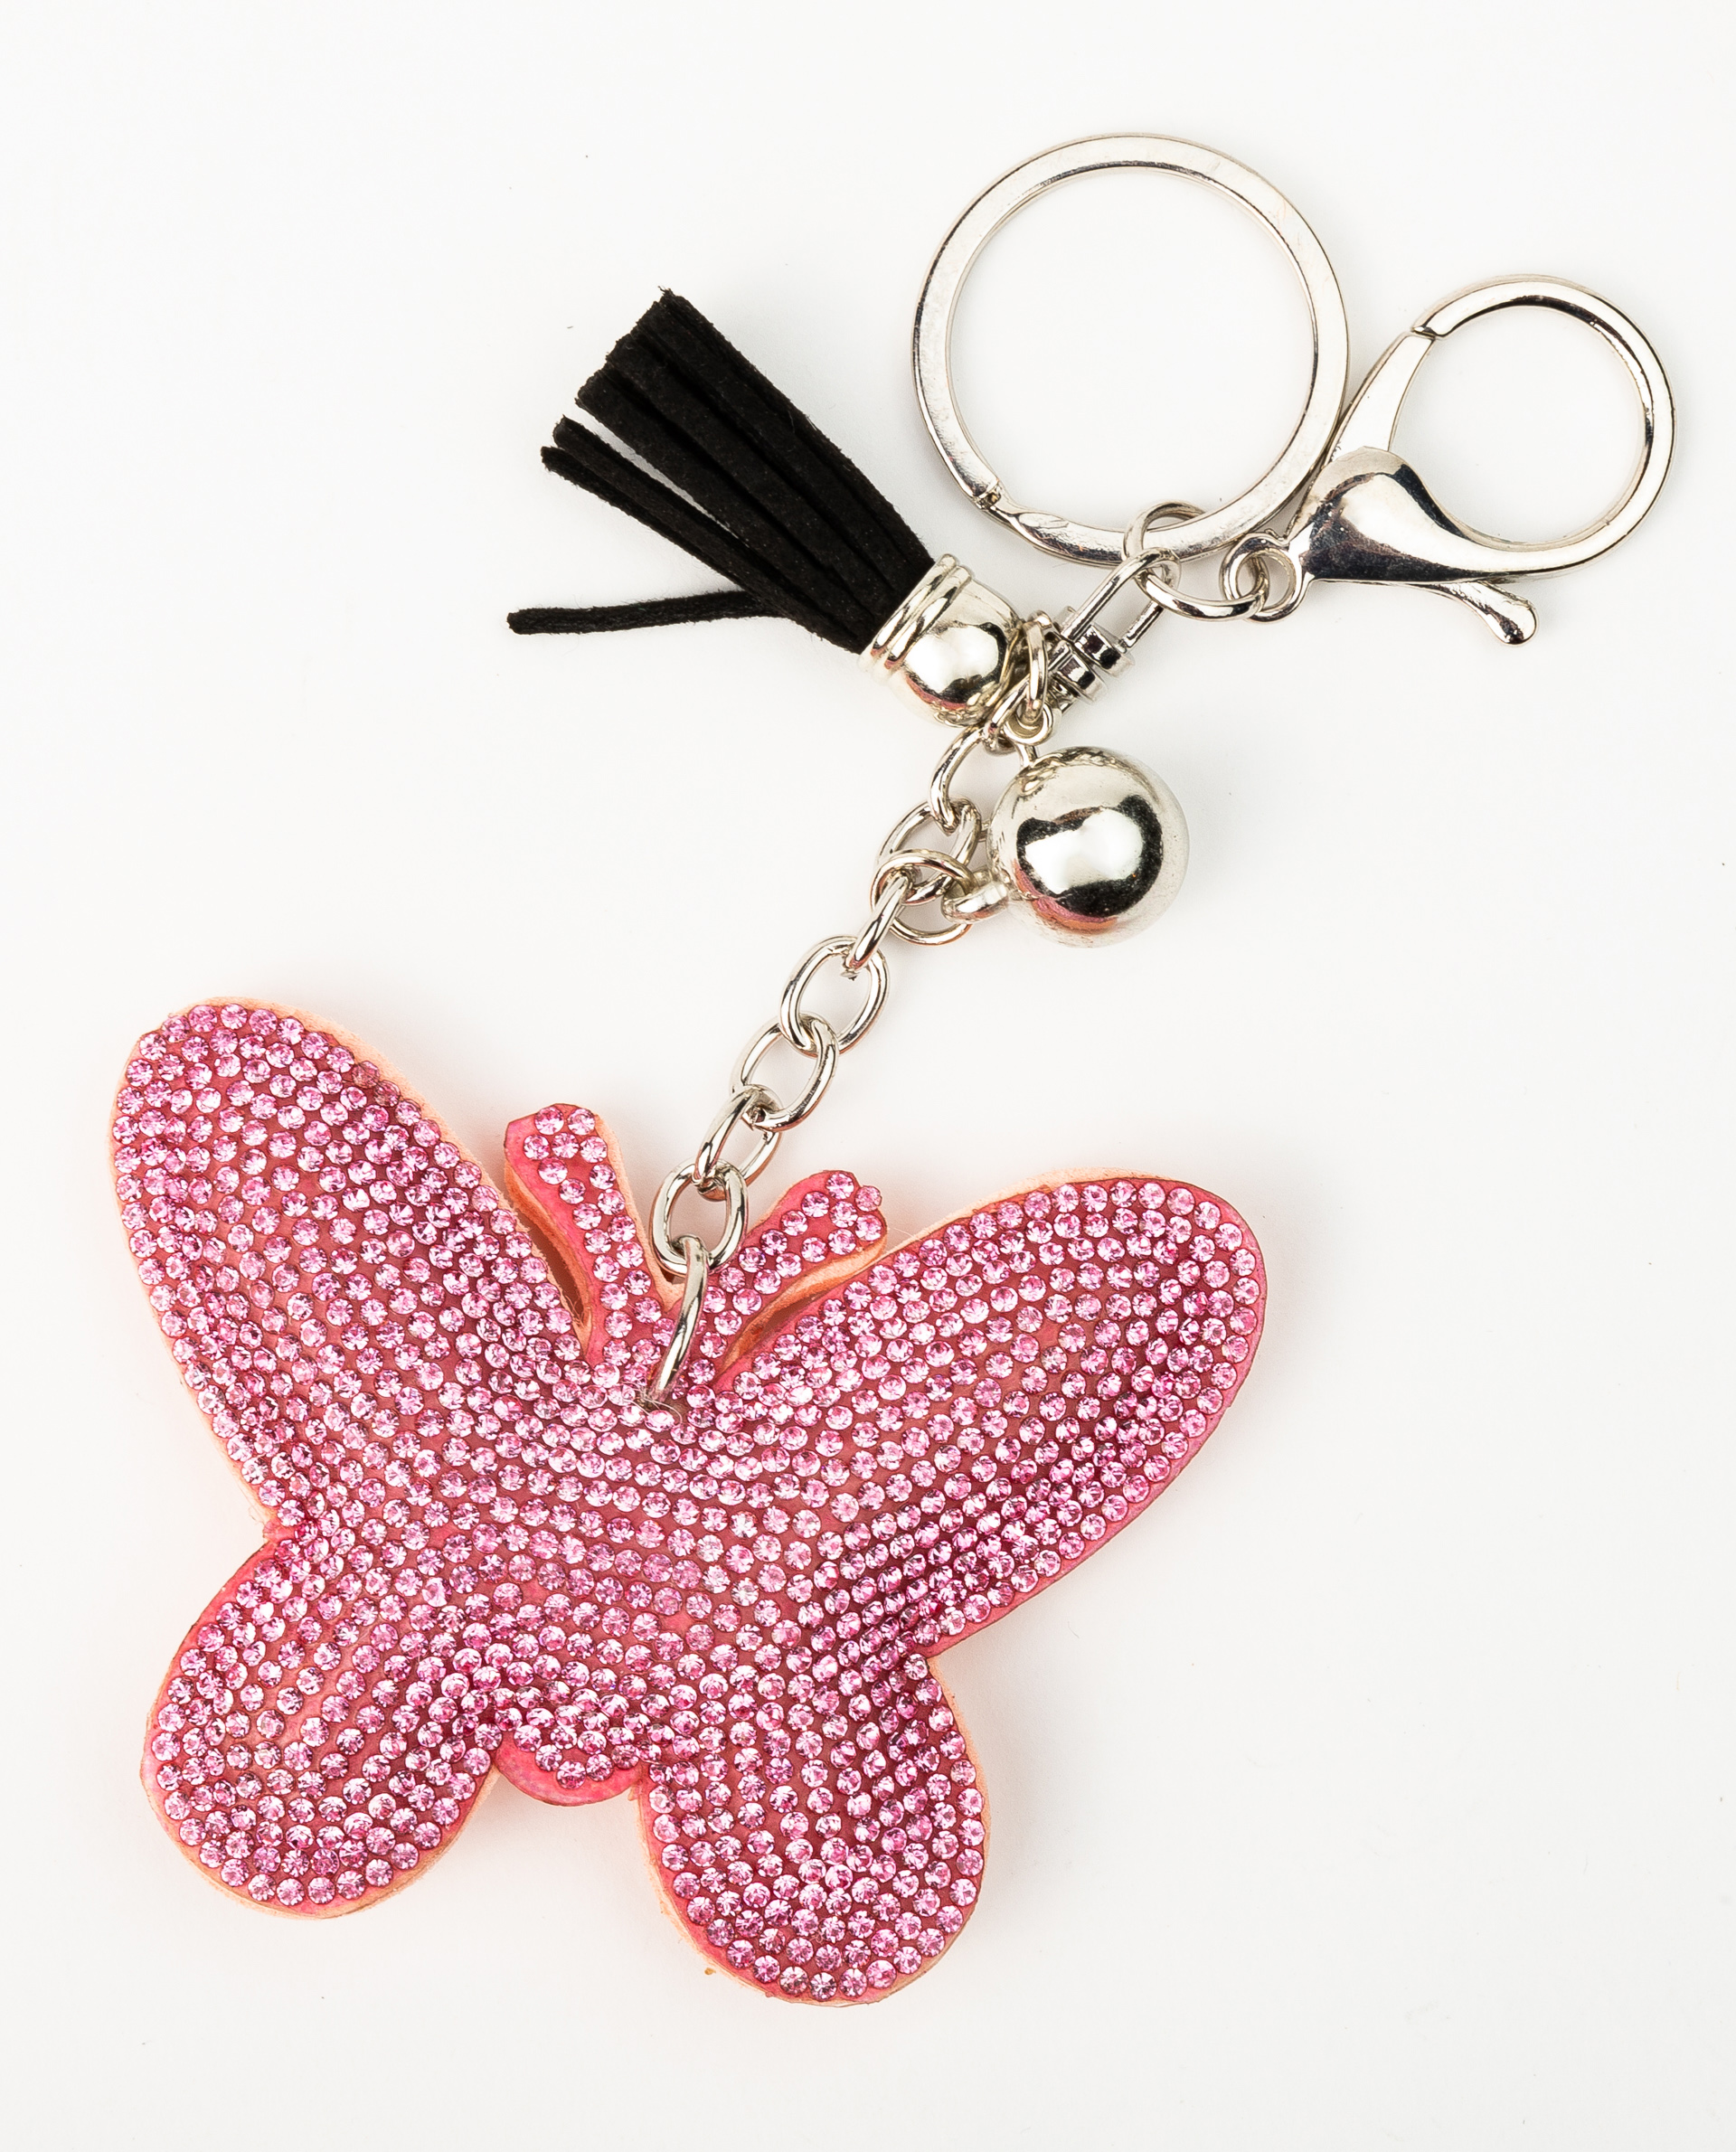 7549a6f7f Keychain Butterfly Gulliver is to buy in online store Gulliver with ...